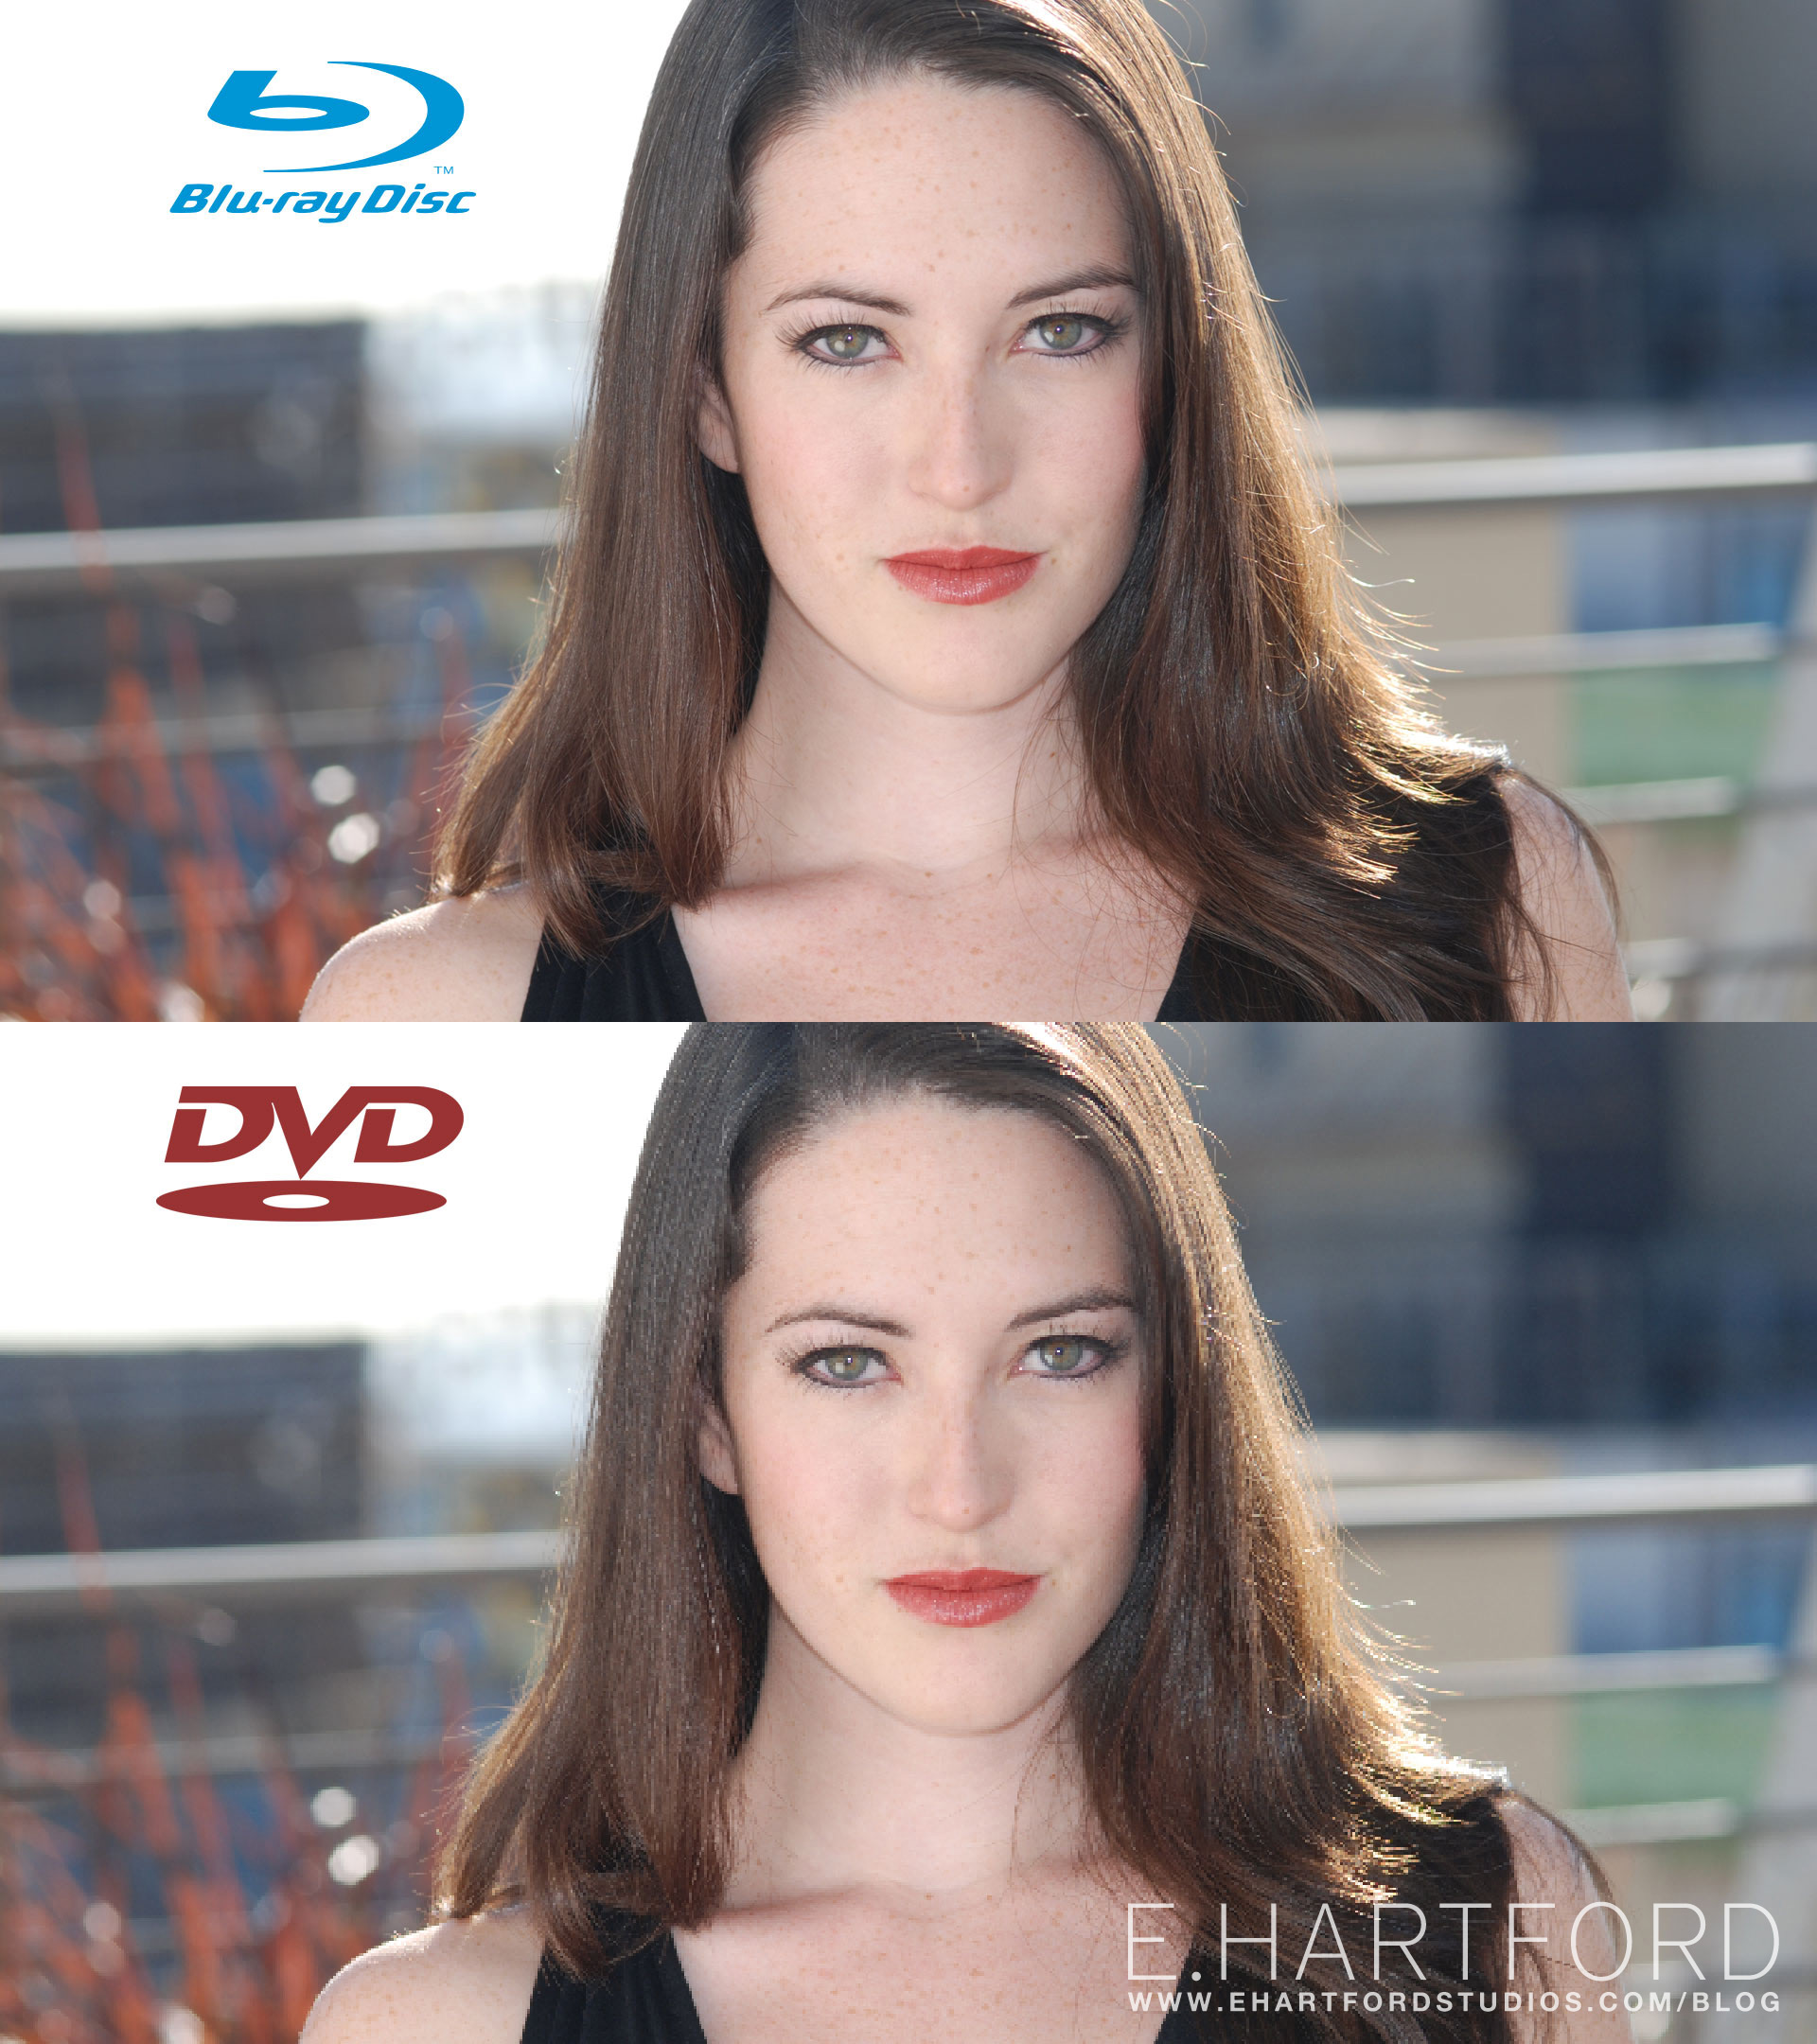 blu-ray-vs-dvd-2